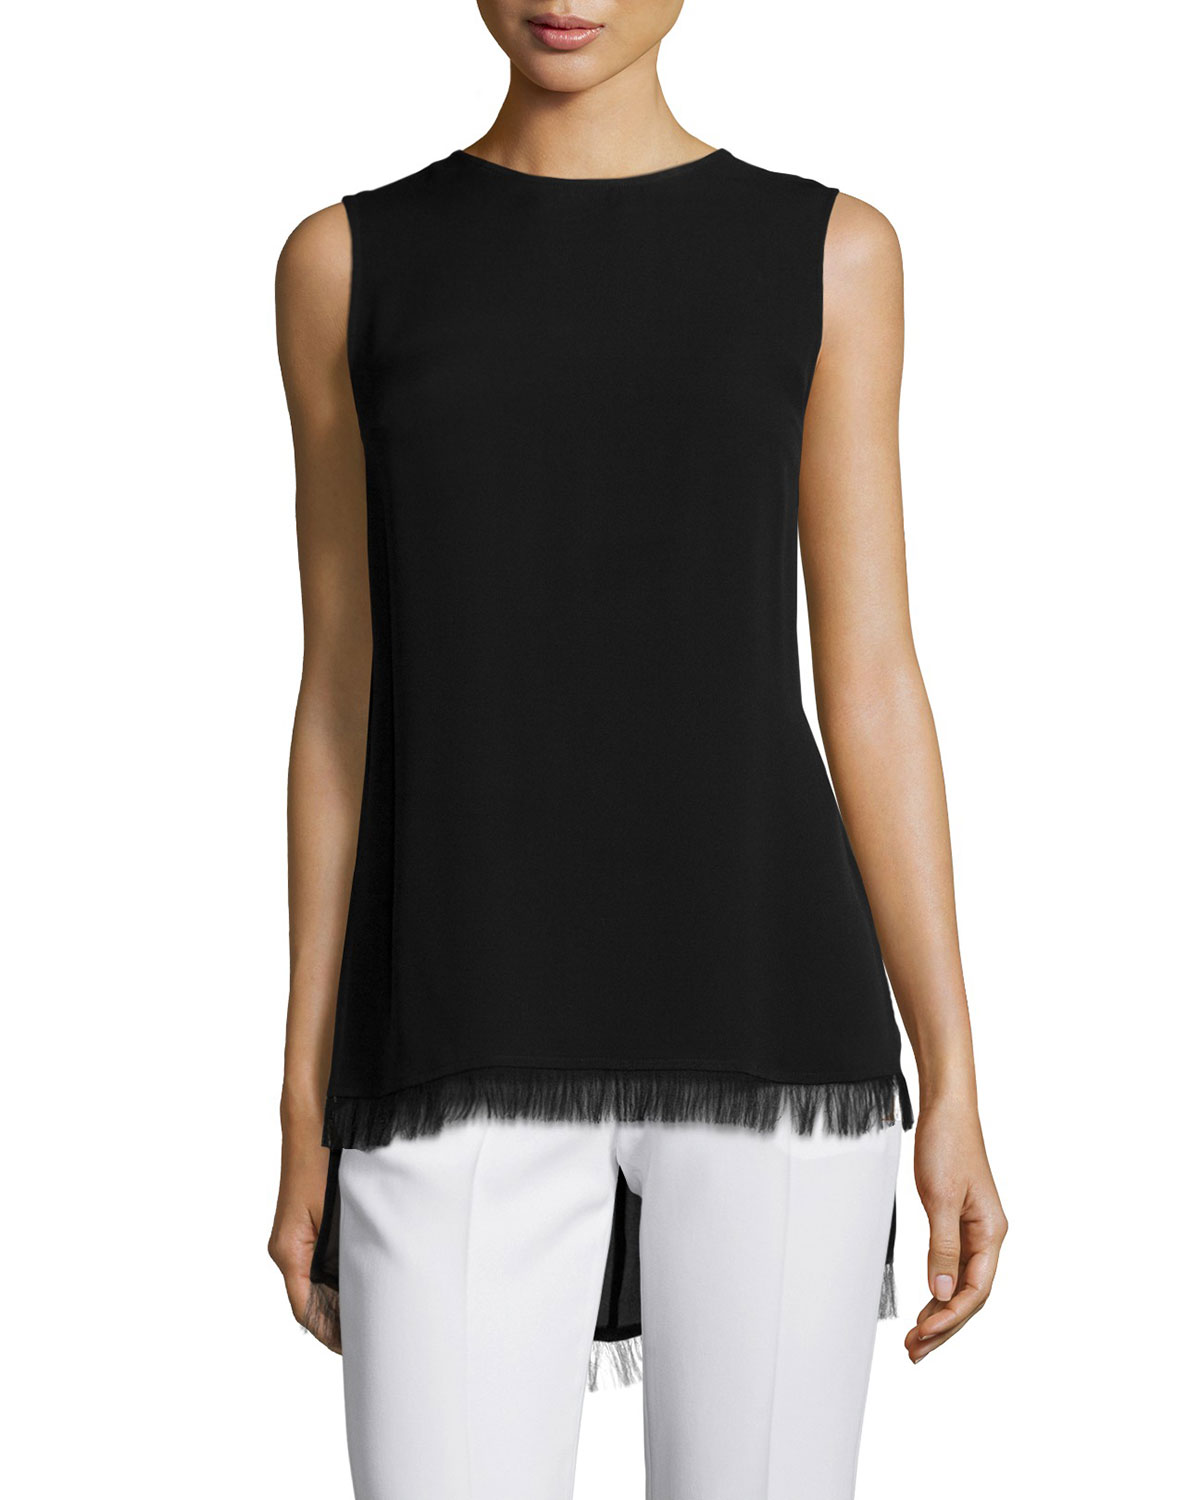 Yinga F. Fringe-Trimmed Top, Black